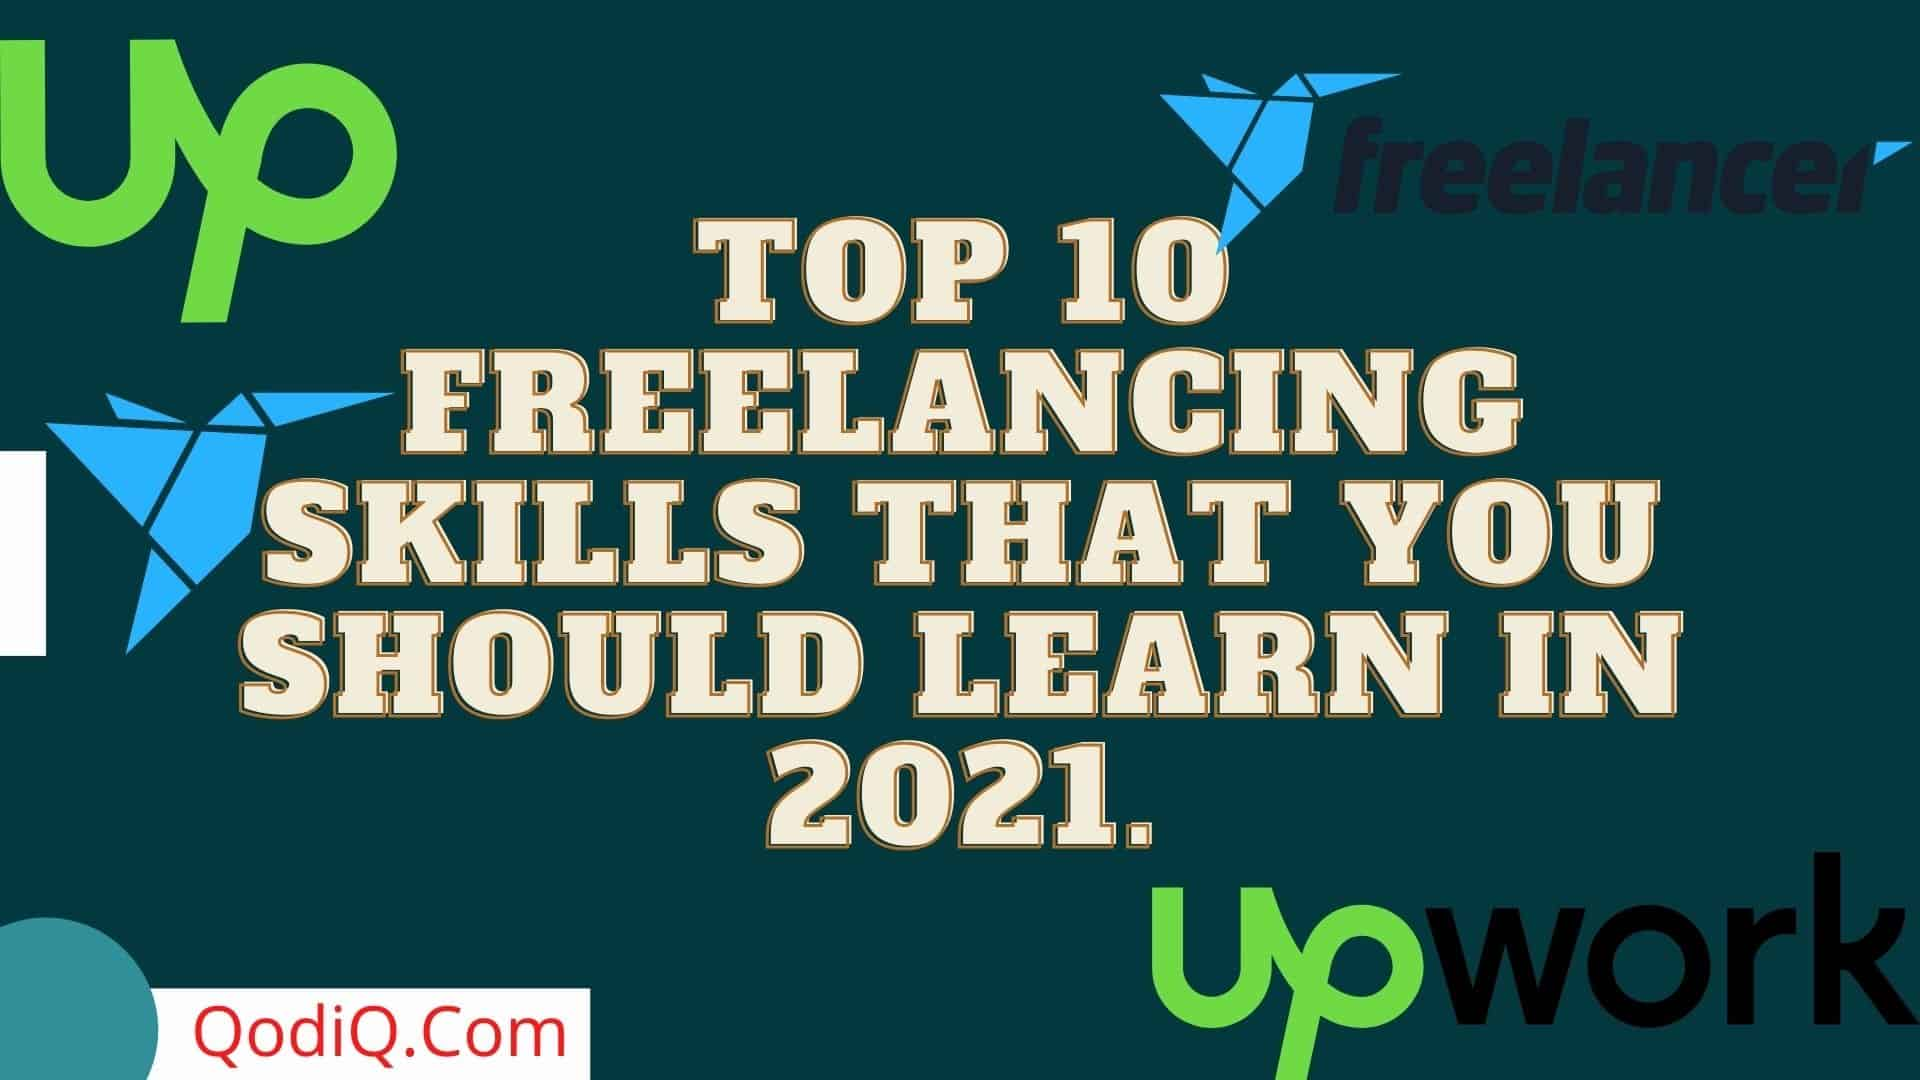 Top 10 Freelancing Skills and Trends in 2021